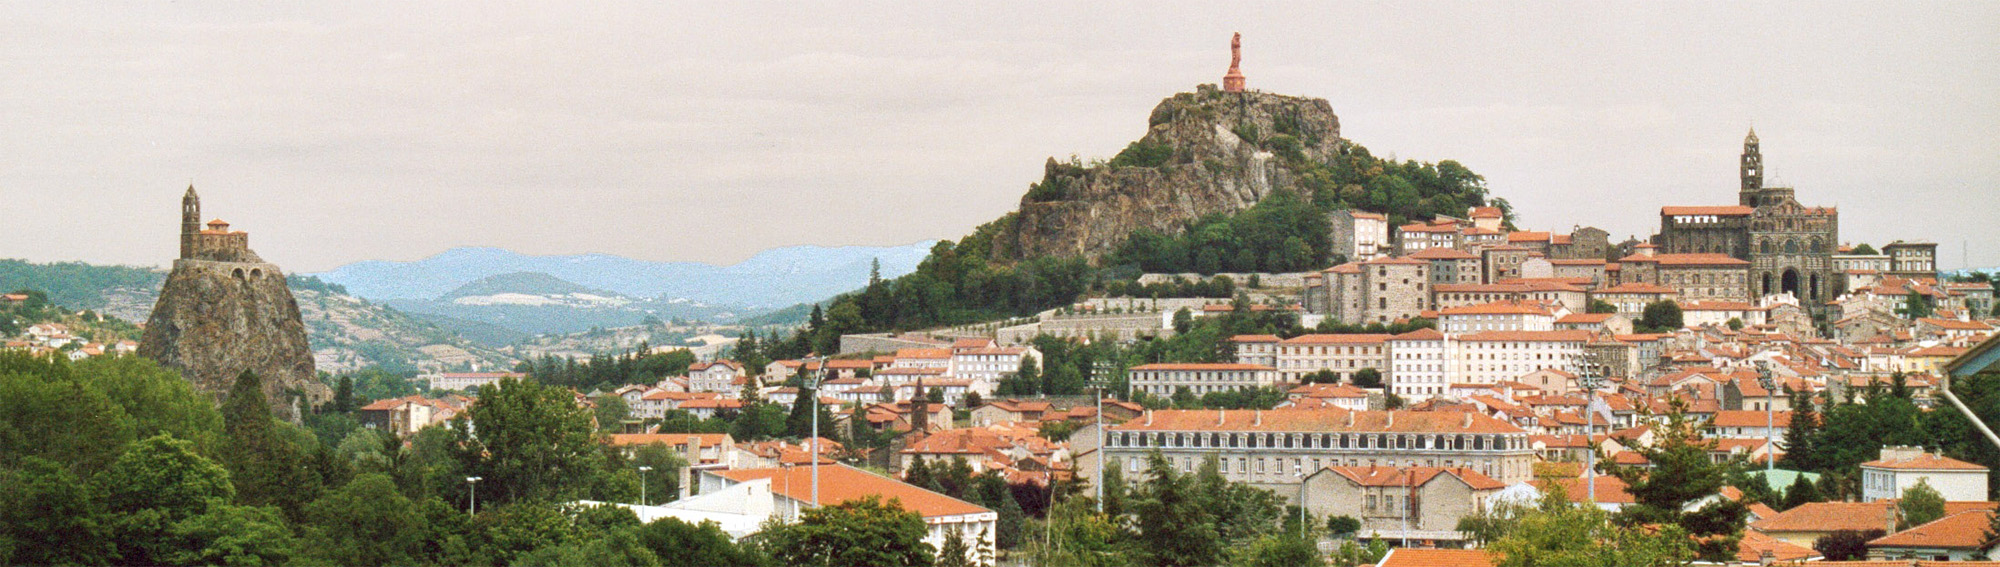 Le_Puy_en_Velay Panorama